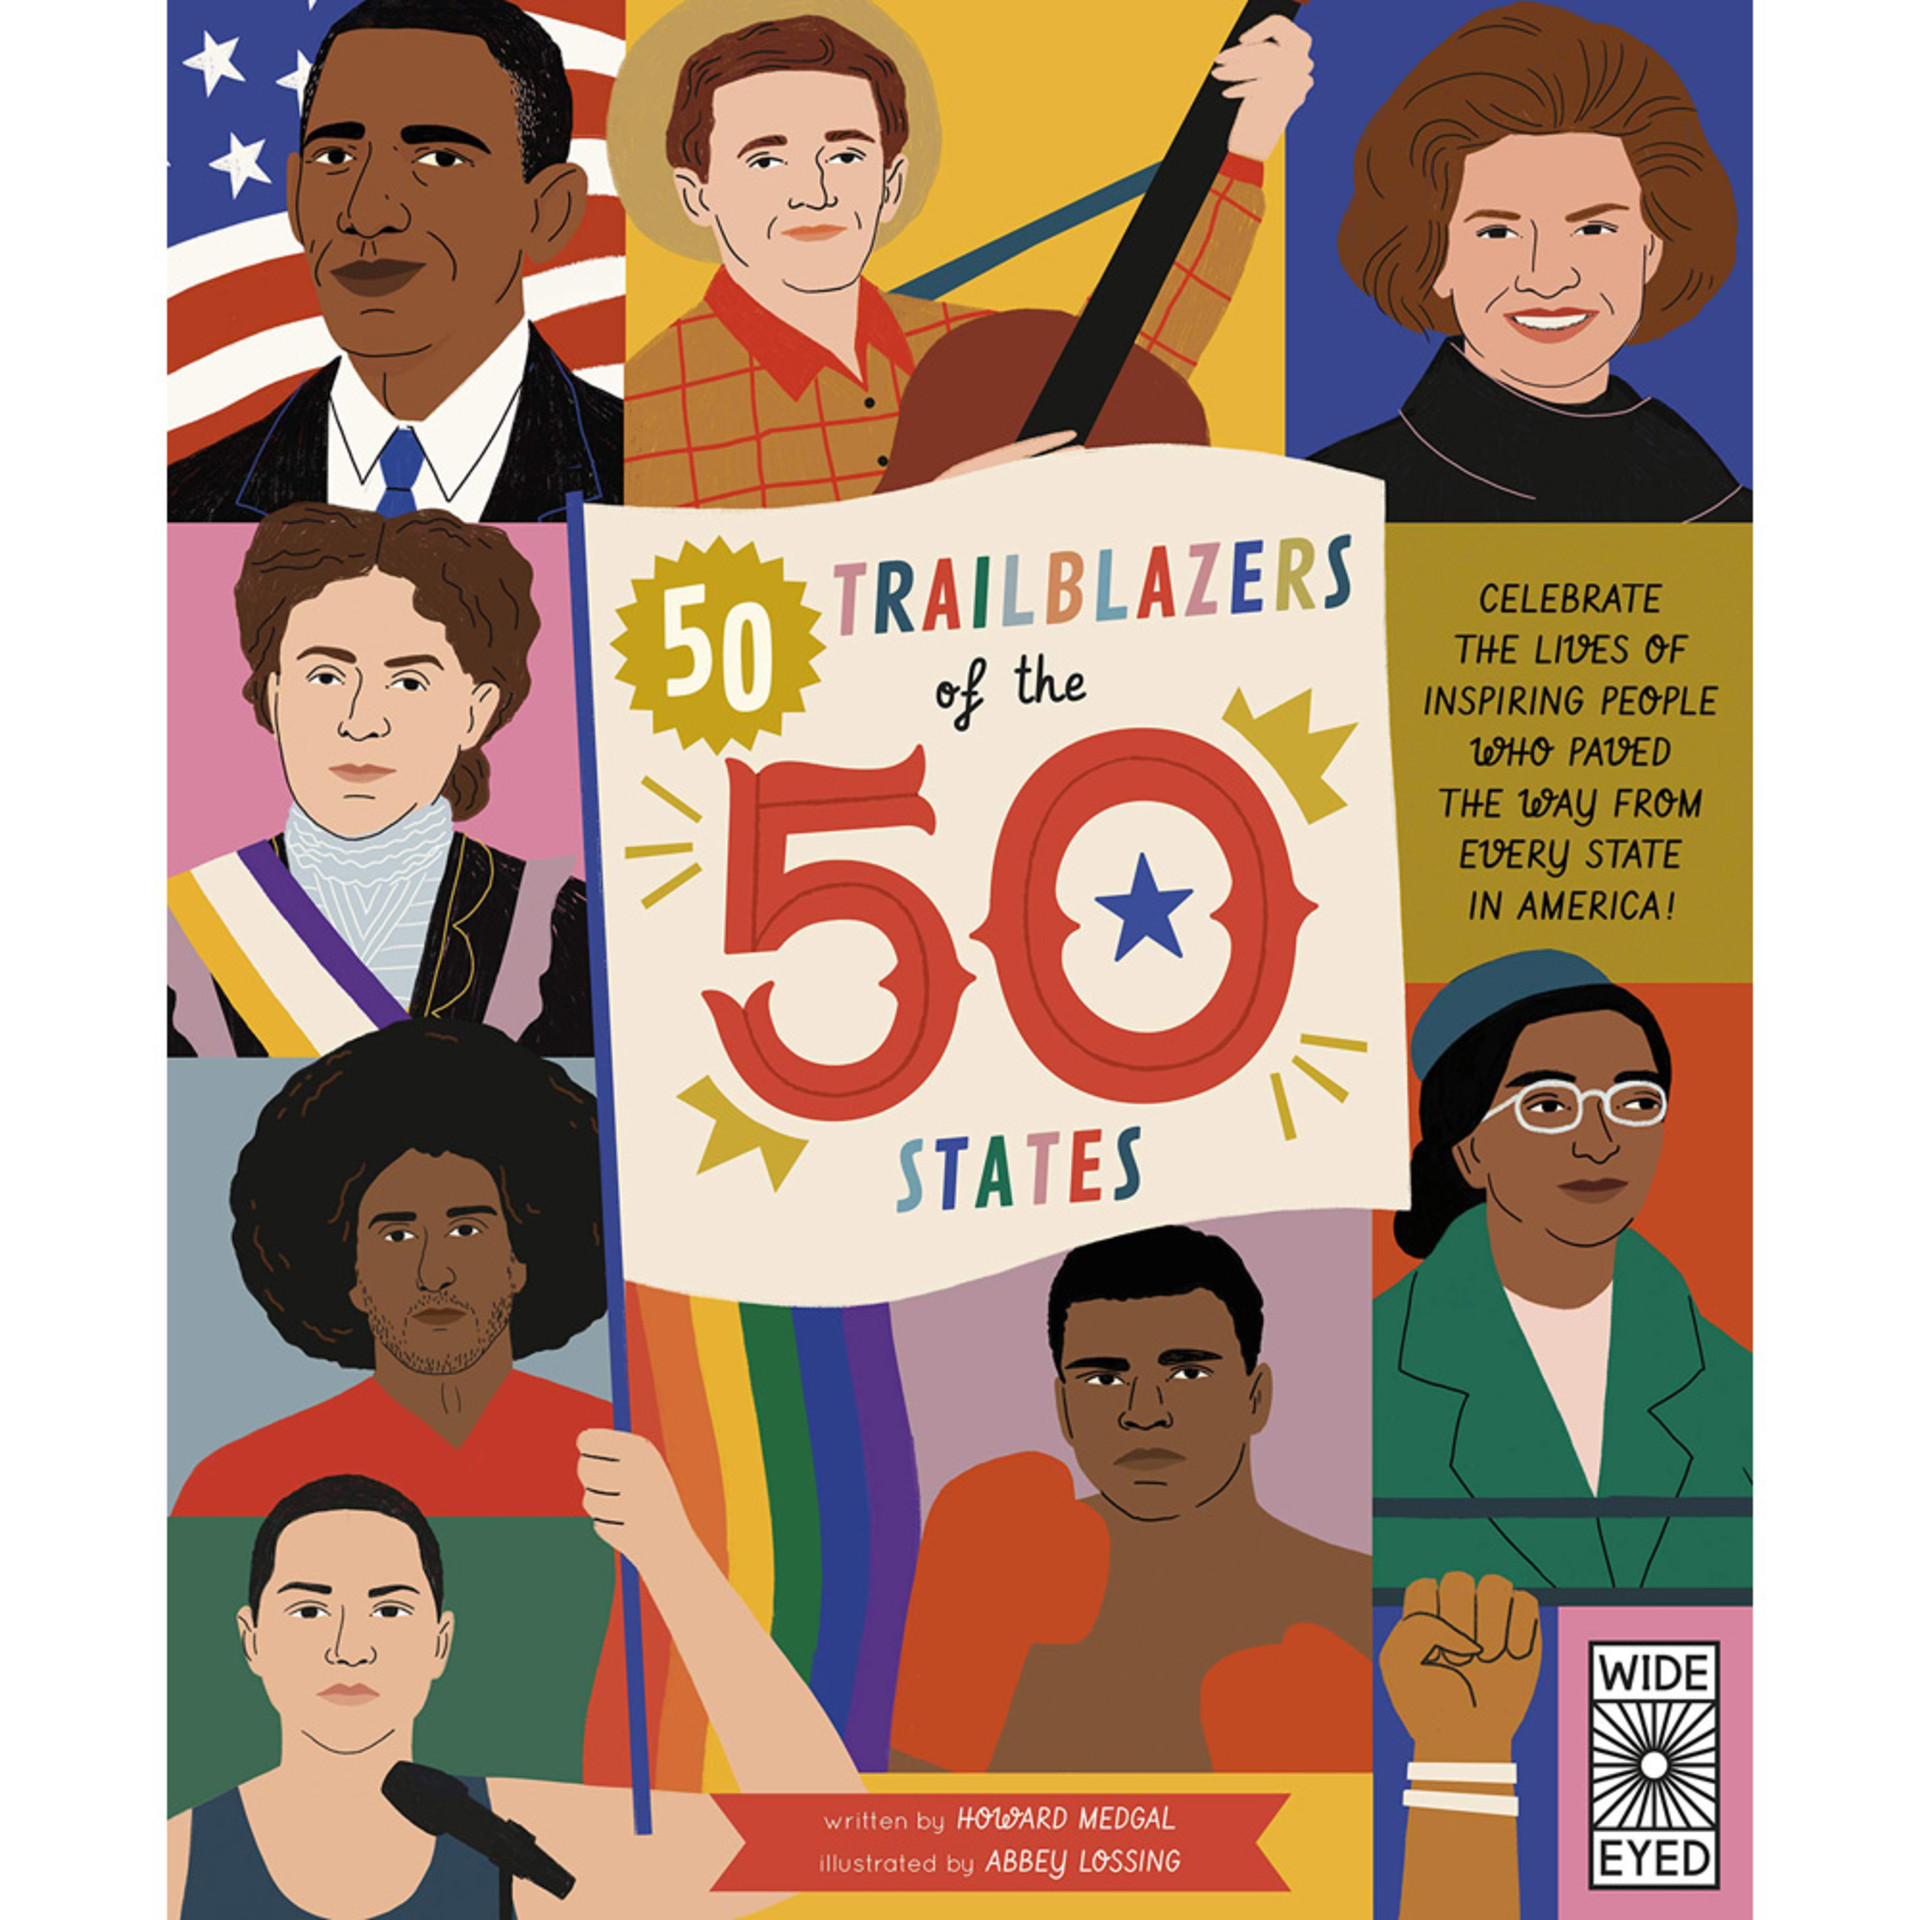 50 Trailblazers of the 50 States by Abbey Lossing